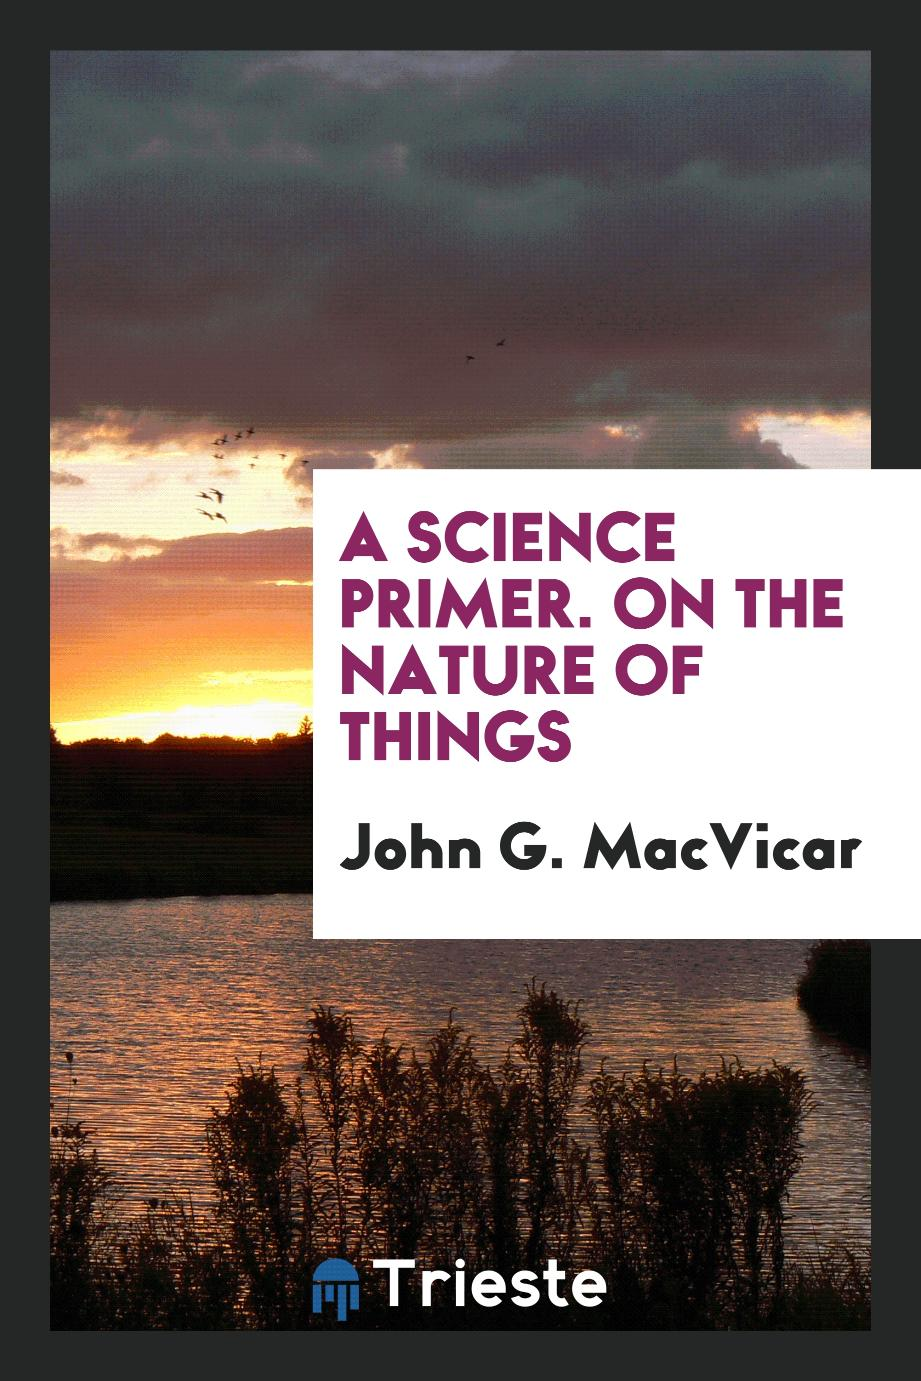 A Science Primer. On the Nature of Things